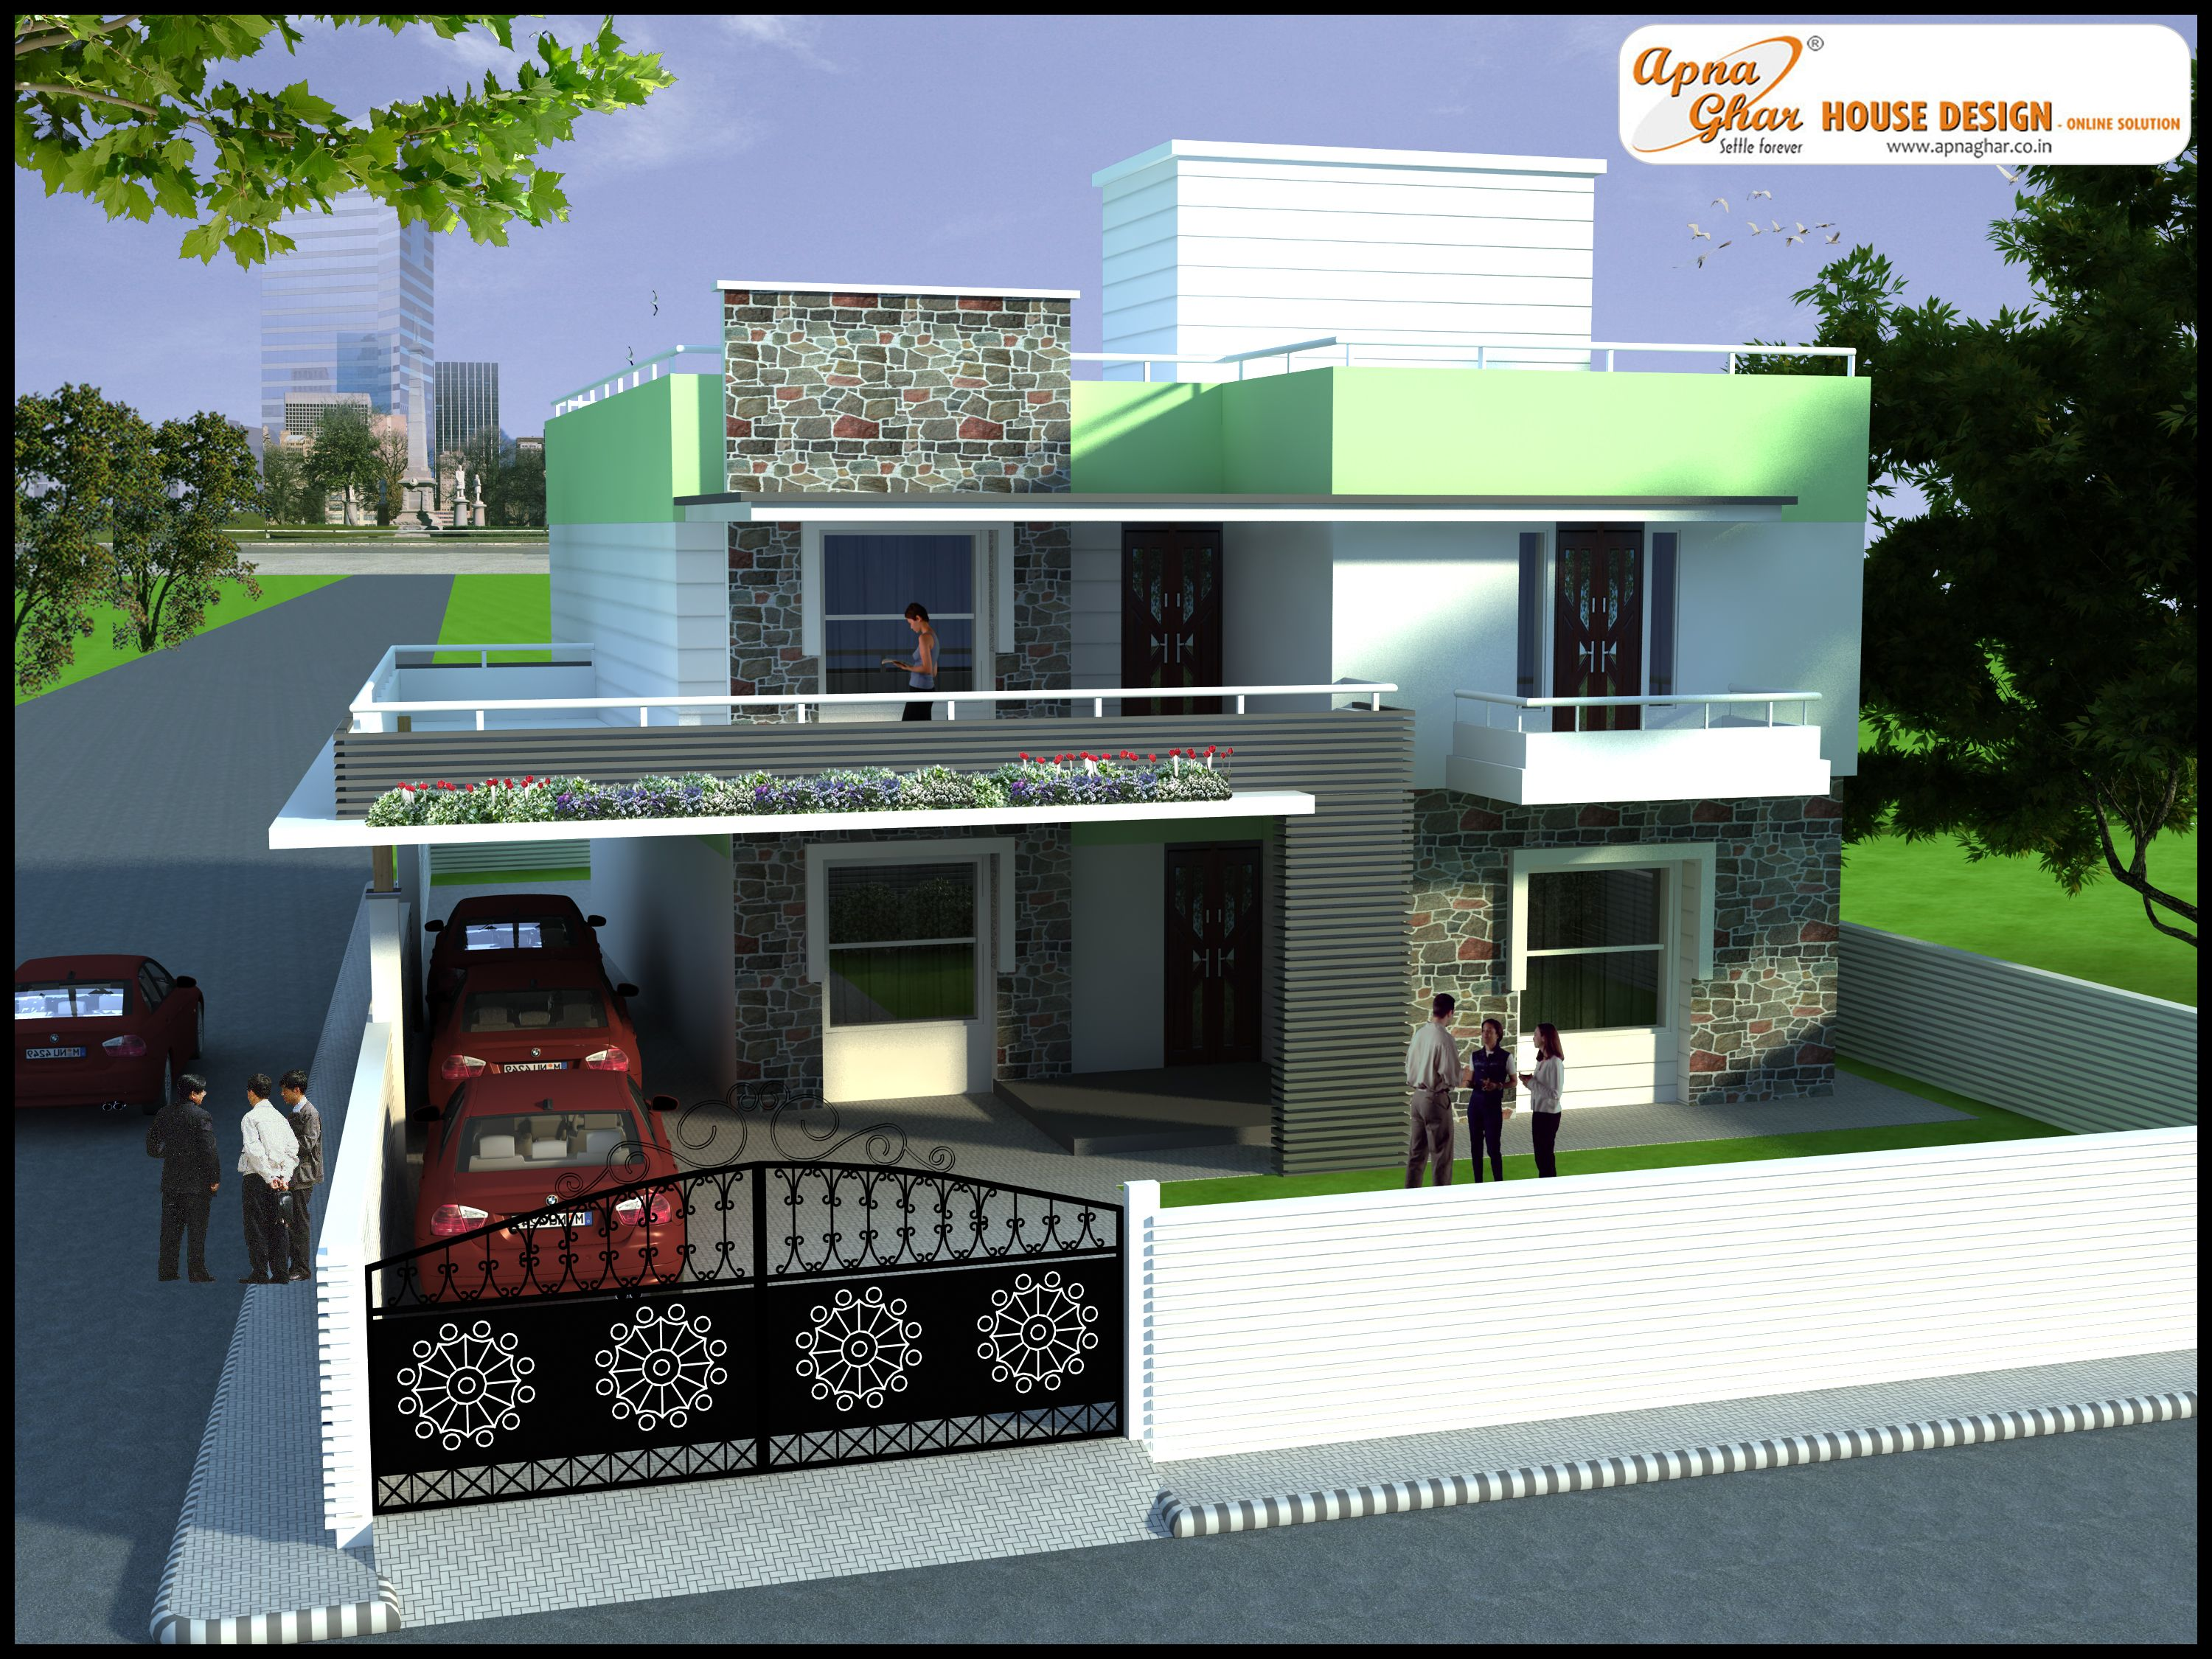 4 bedrooms duplex house design in 450m2 15m x 30m for Duplex designs india